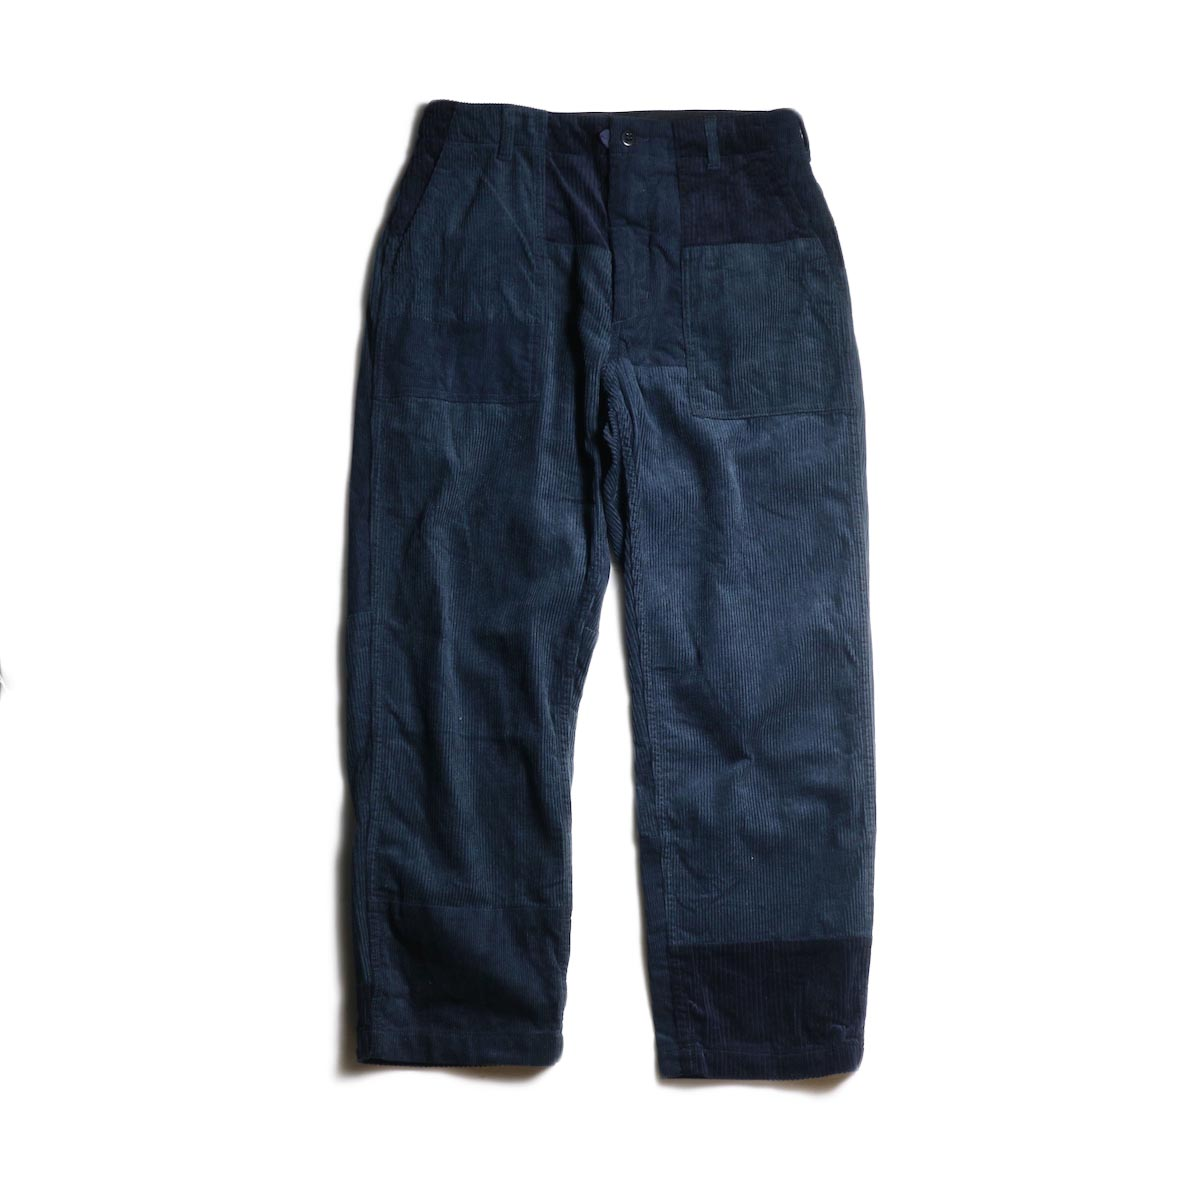 ENGINEERED GARMENTS / Fatigue Pant -8W Corduroy (Navy)